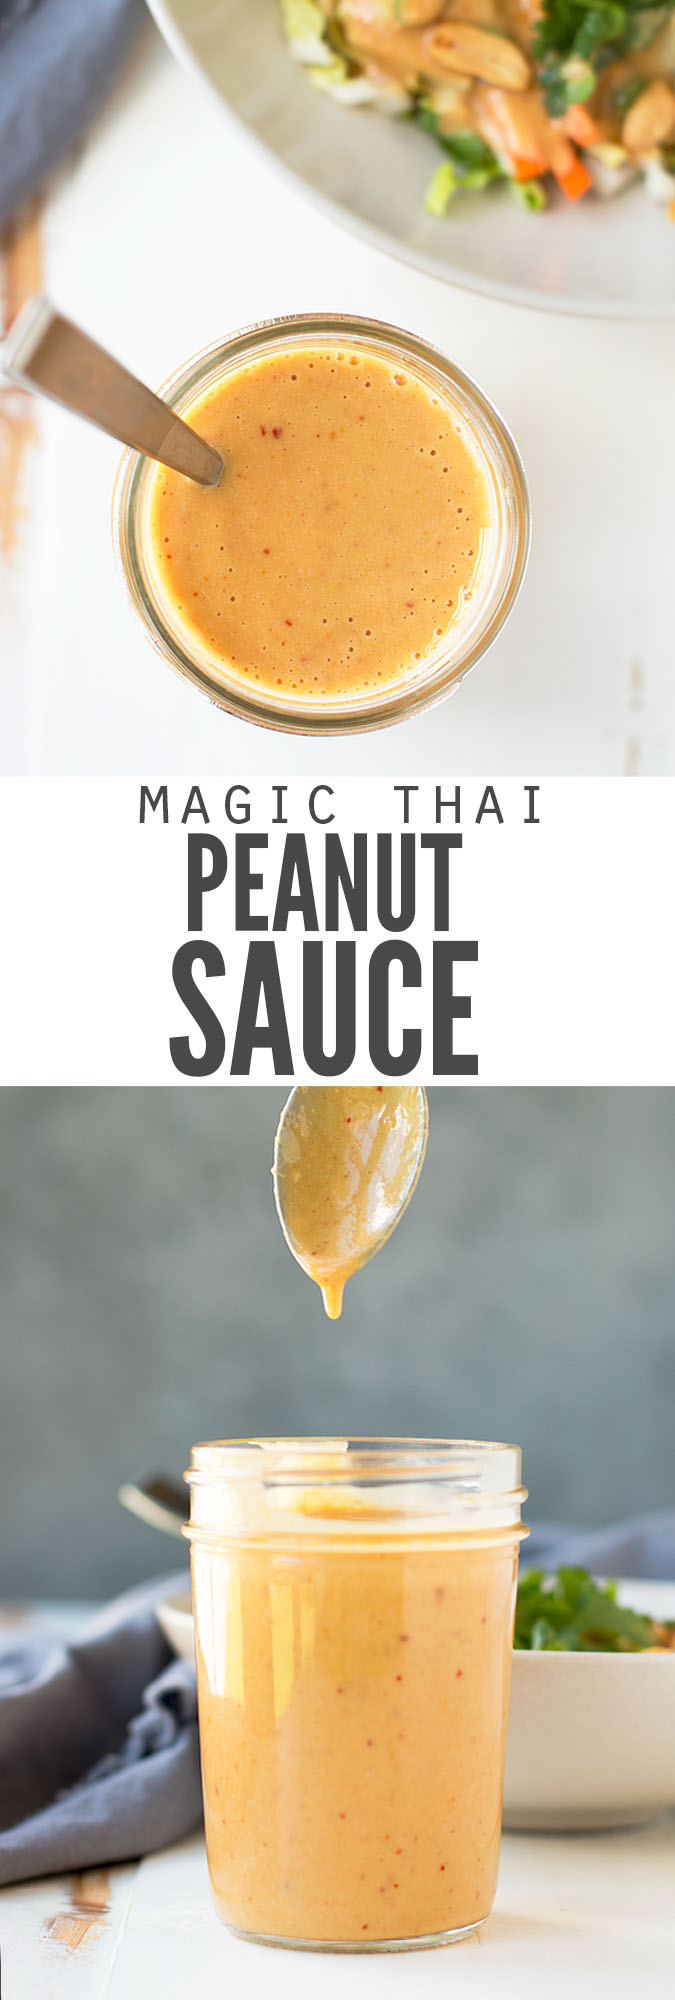 Easy Thai Peanut Sauce - Don't Waste the Crumbs